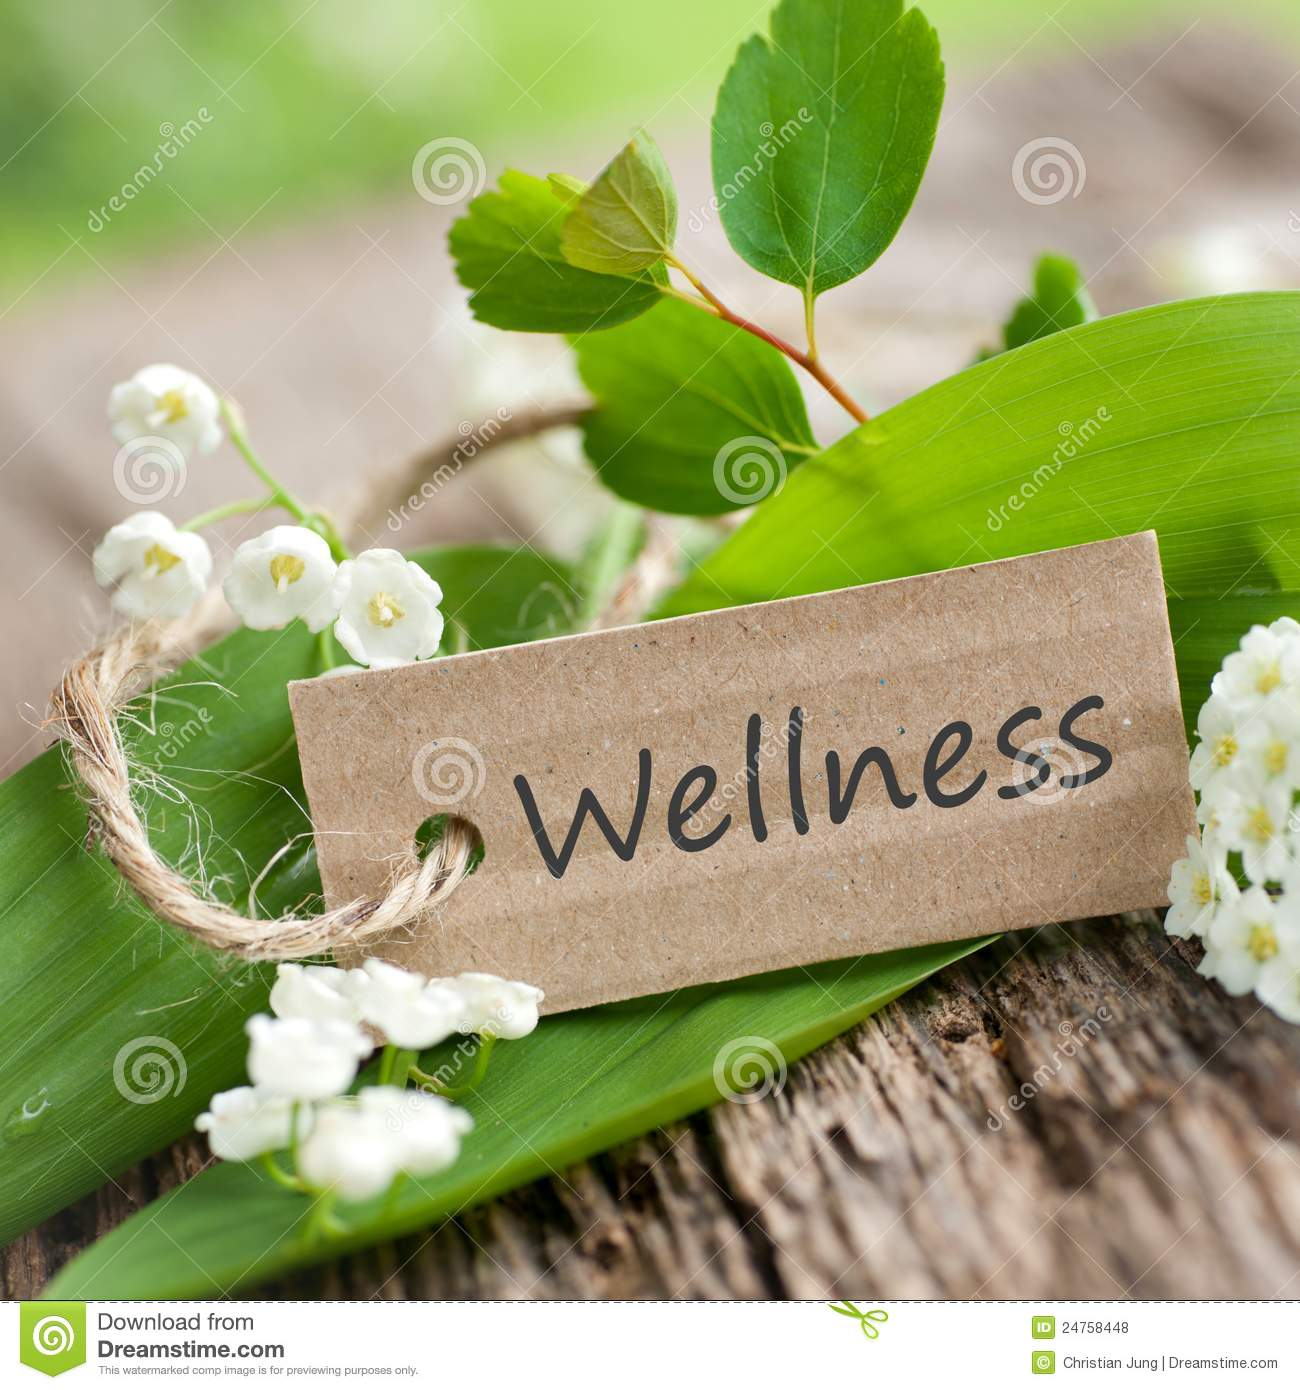 Wellness Royalty Free Stock Photos - Image: 24758448: www.dreamstime.com/royalty-free-stock-photos-wellness-image24758448